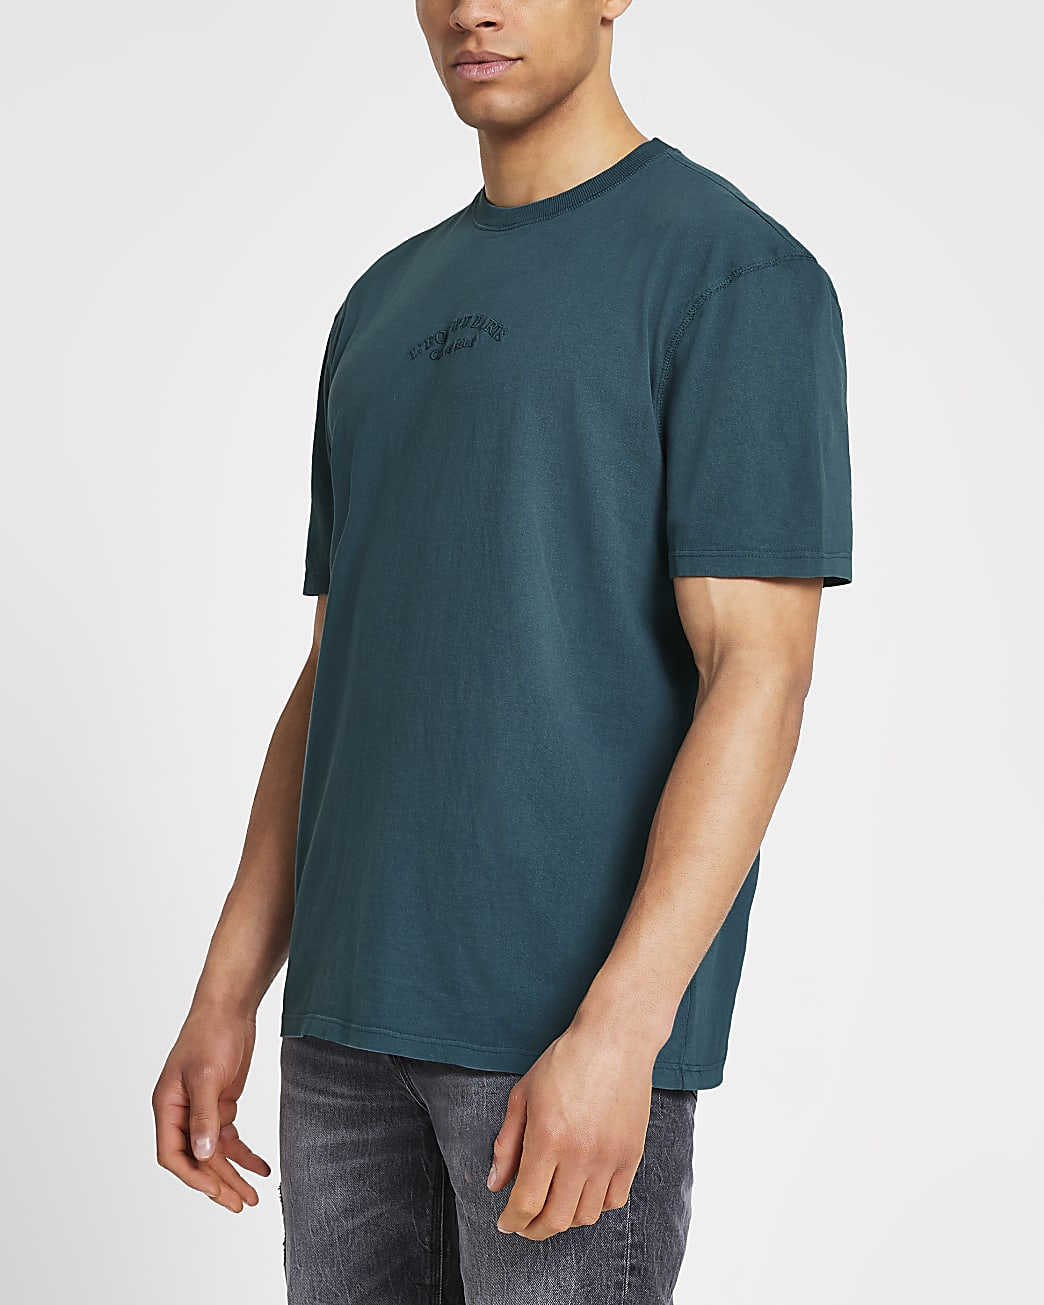 Blue washed graphic t-shirt